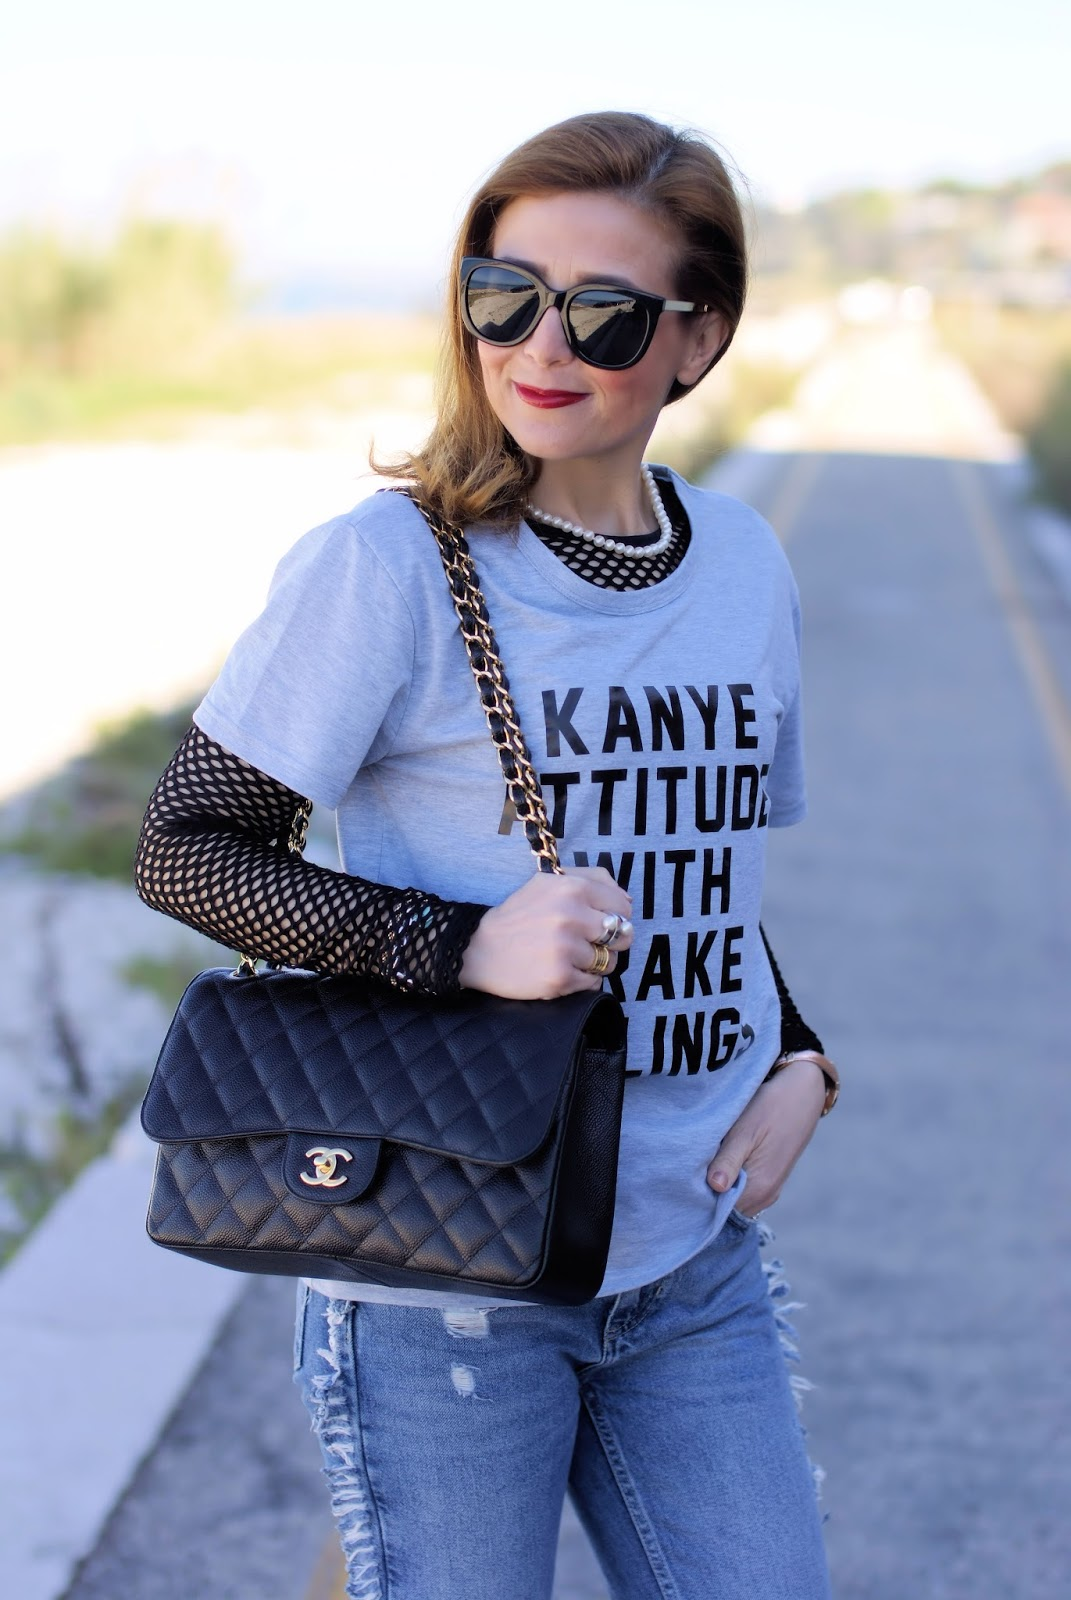 Kanye attitude with Drake feelings fishnet top and Chanel bag on Fashion and Cookies fashion blog, fashion blogger style